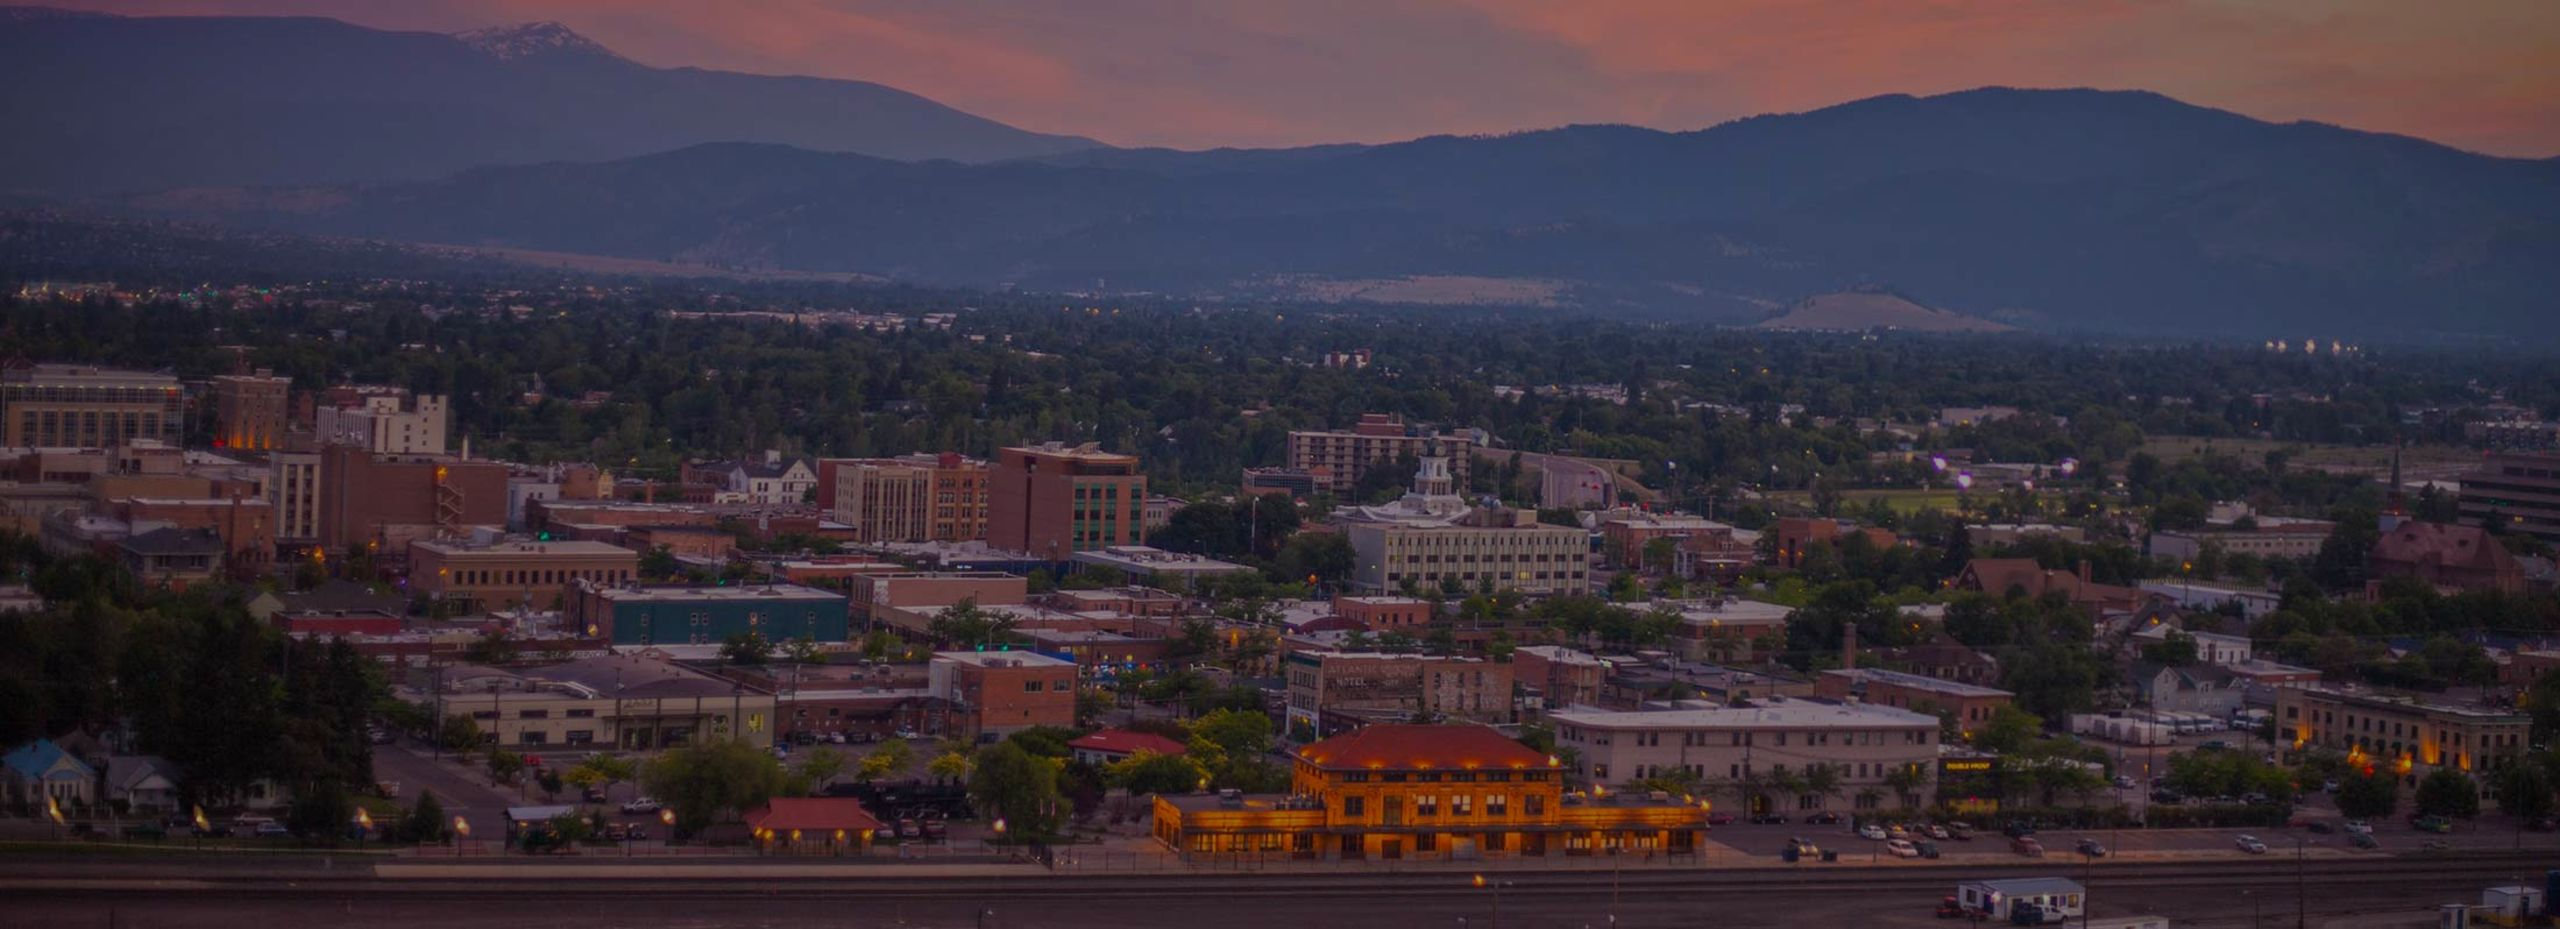 W​hy move to Missoula? An activities & culture rundown of Missoula, Montana